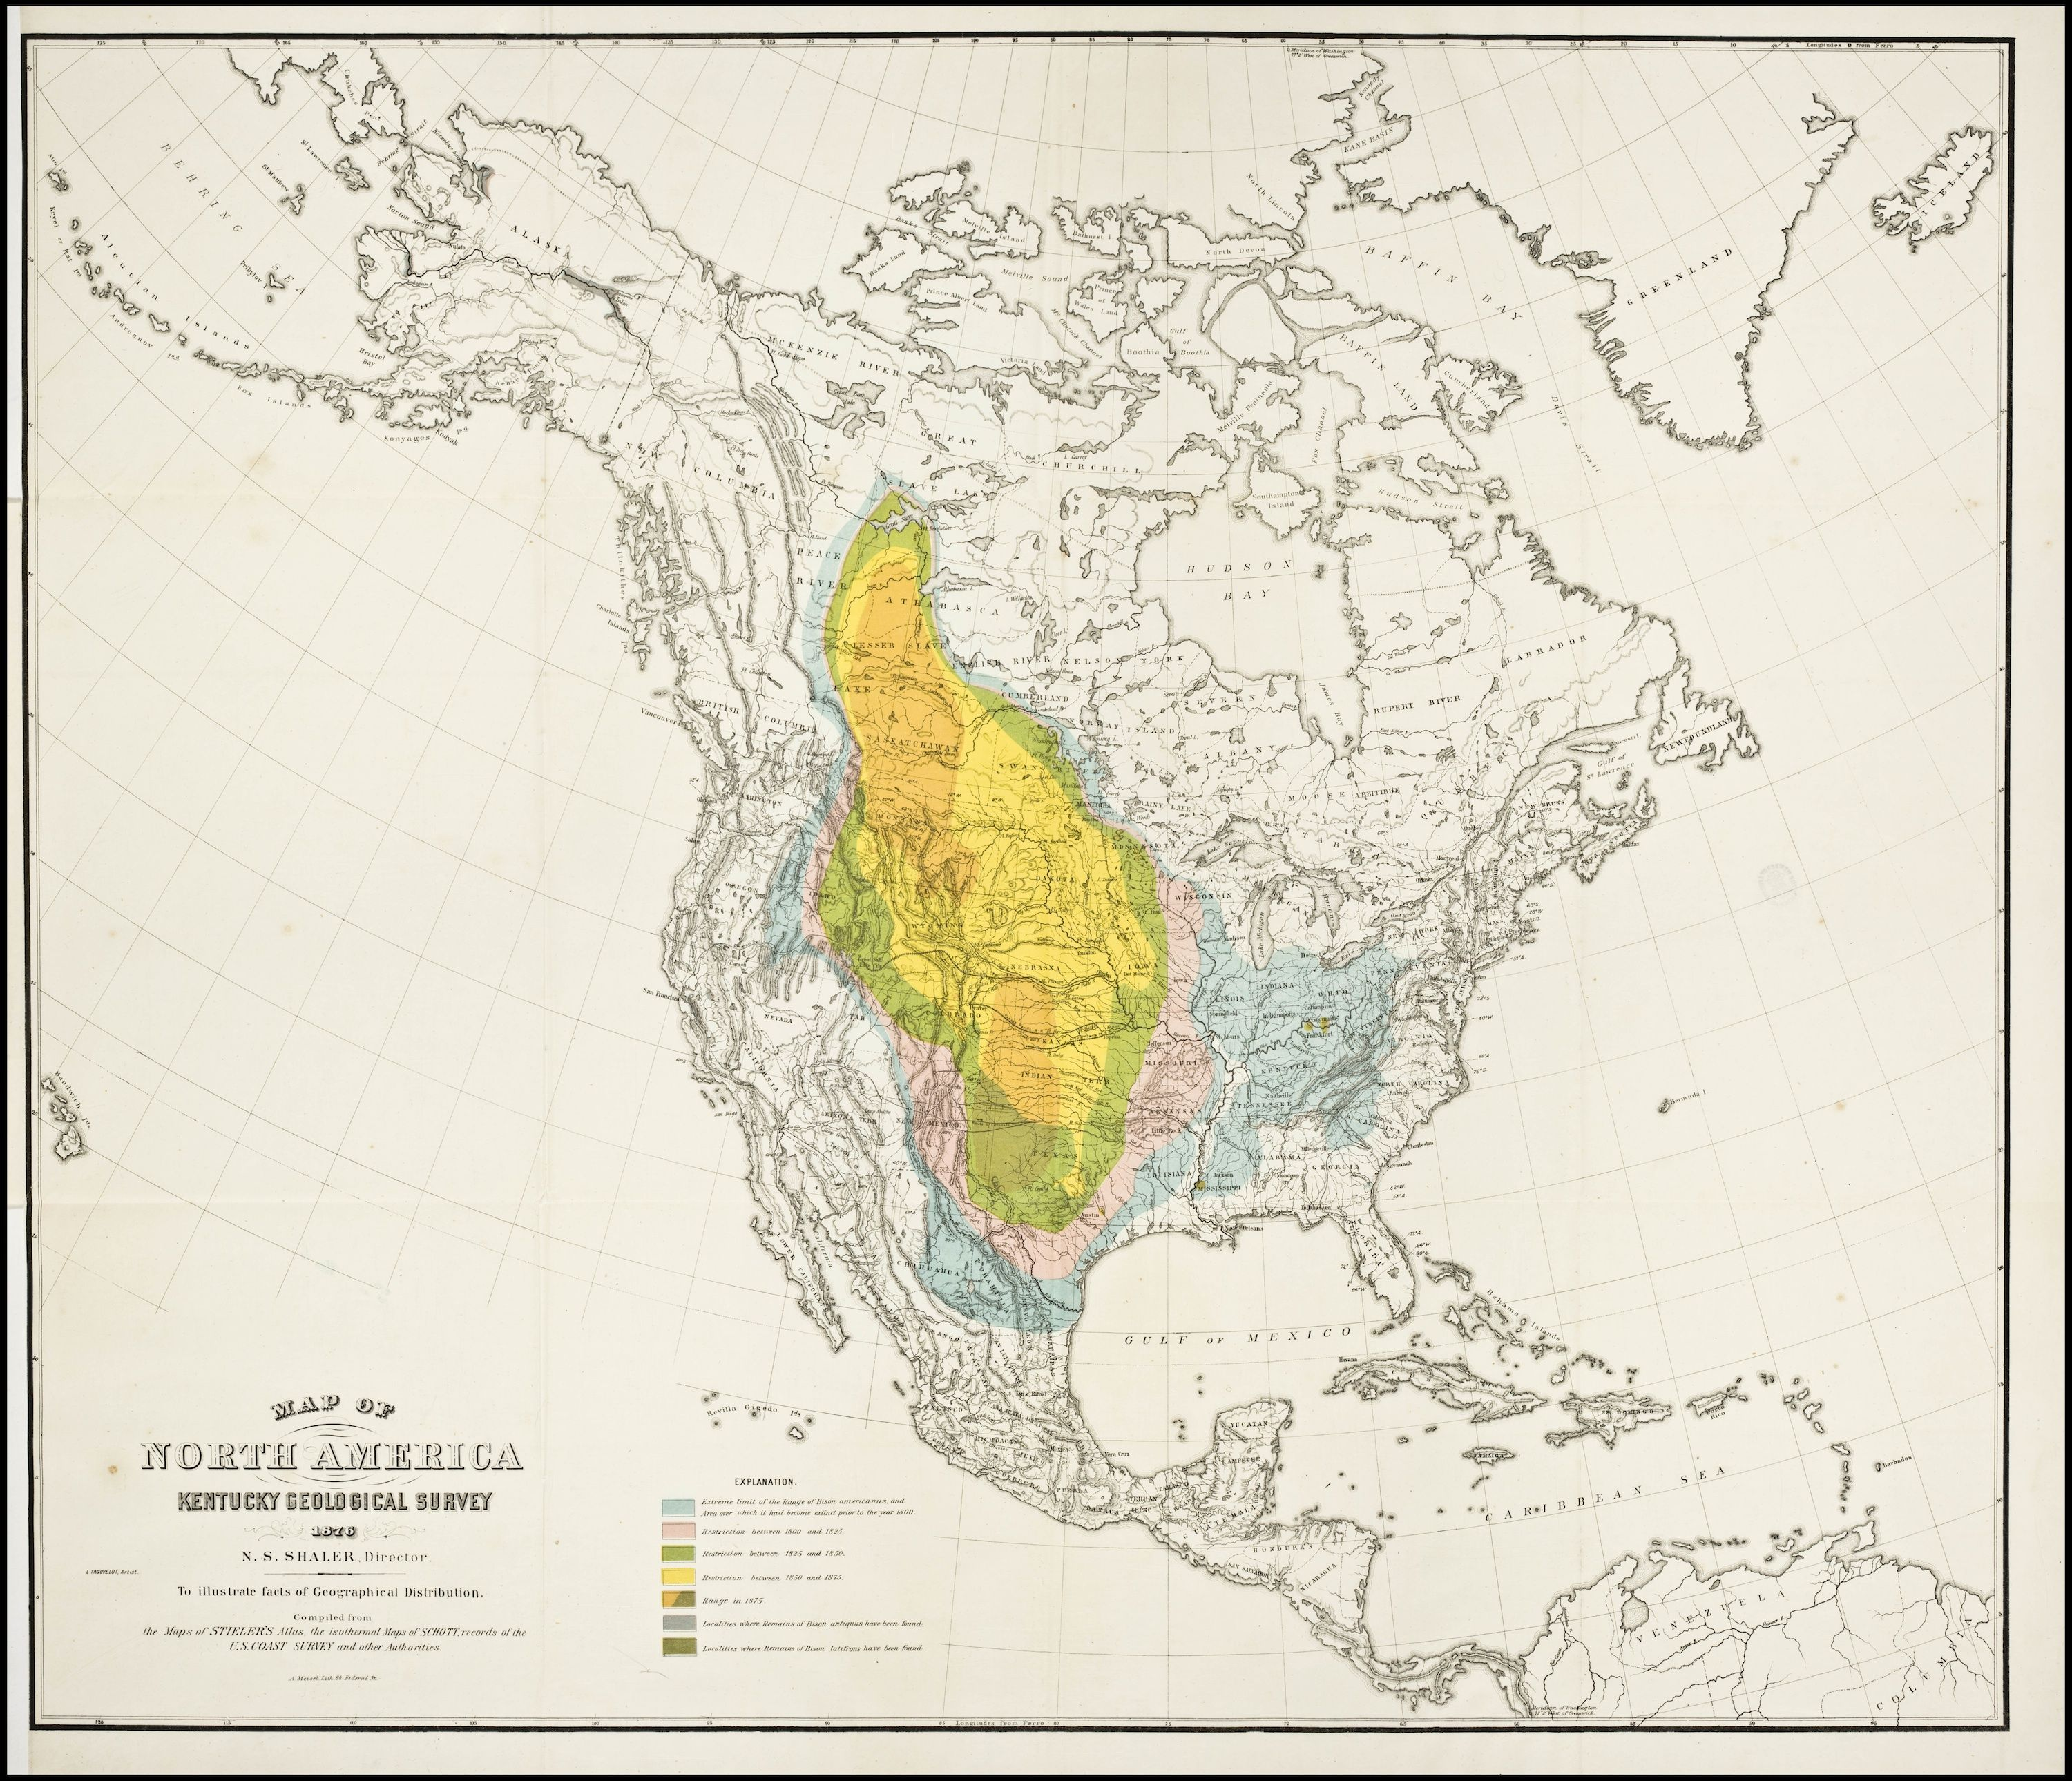 The Disappearance Of Buffalo In North America 1876 Map